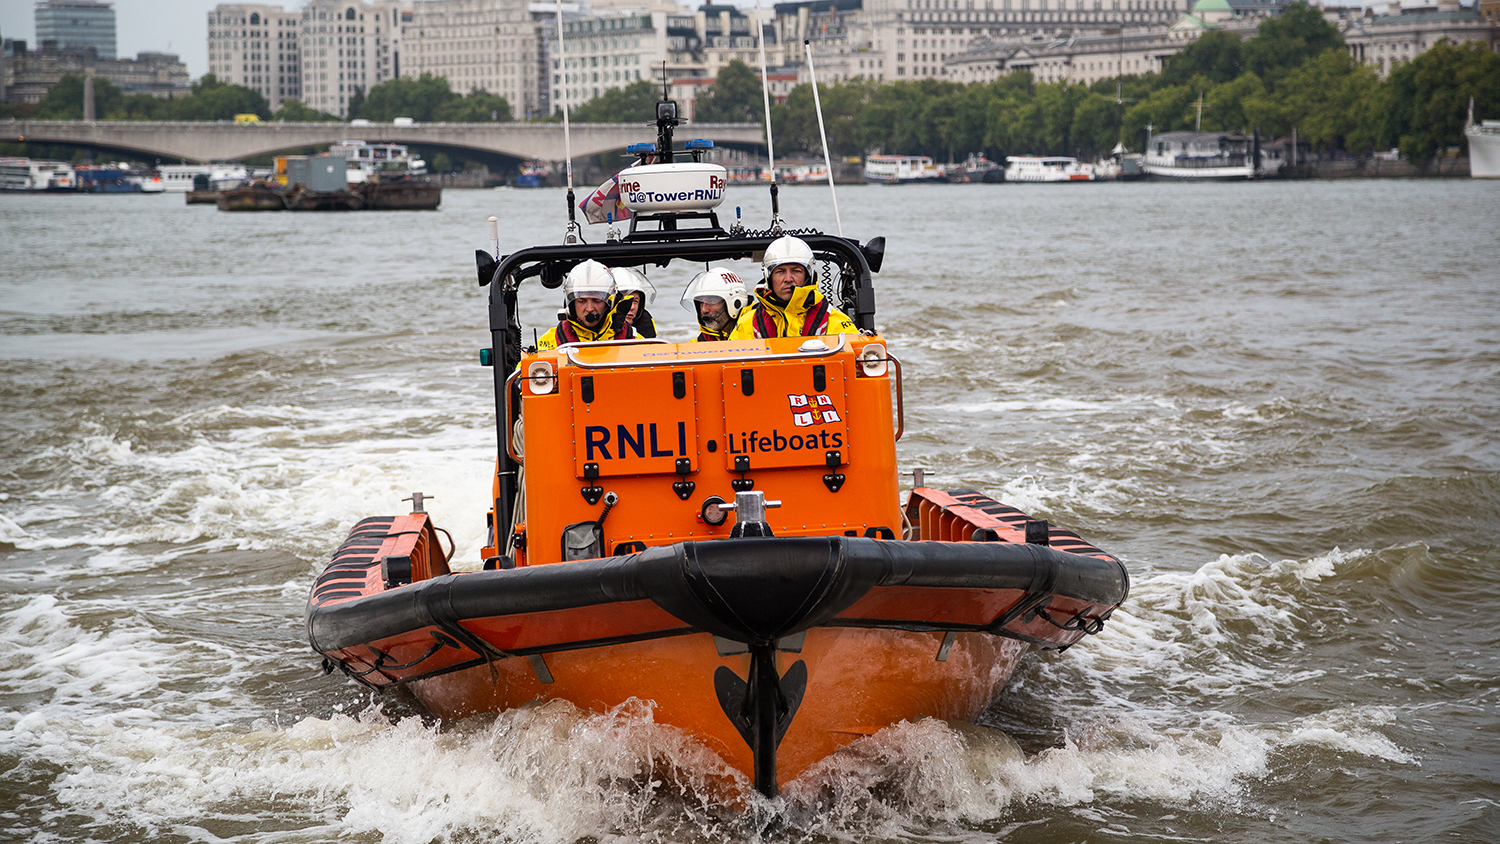 Adapting to changing times: our E class inshore lifeboat was specially designed for London's busy River Thames